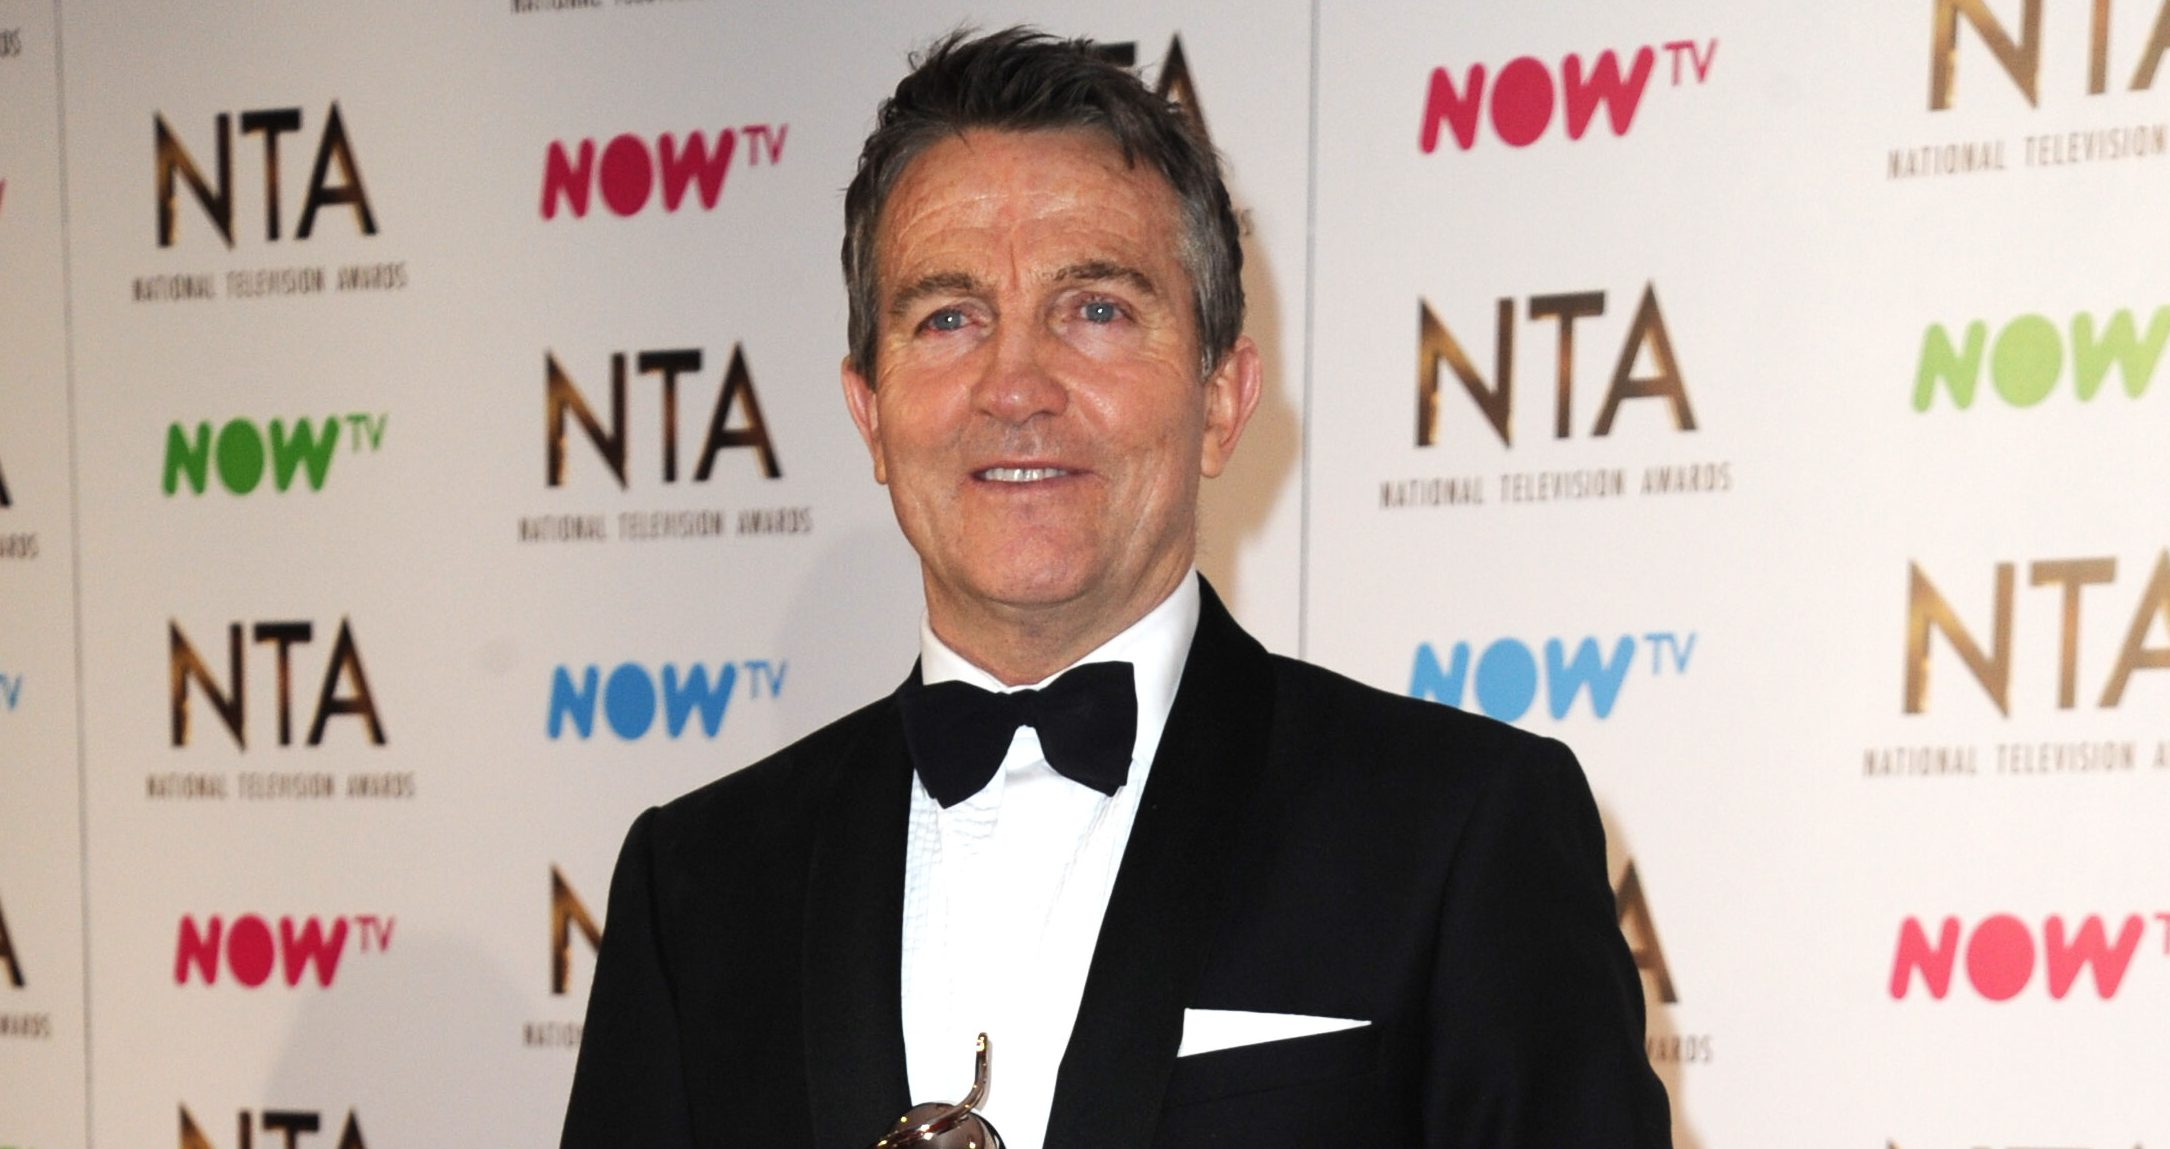 Bradley Walsh stuns fans with hidden piano playing talent